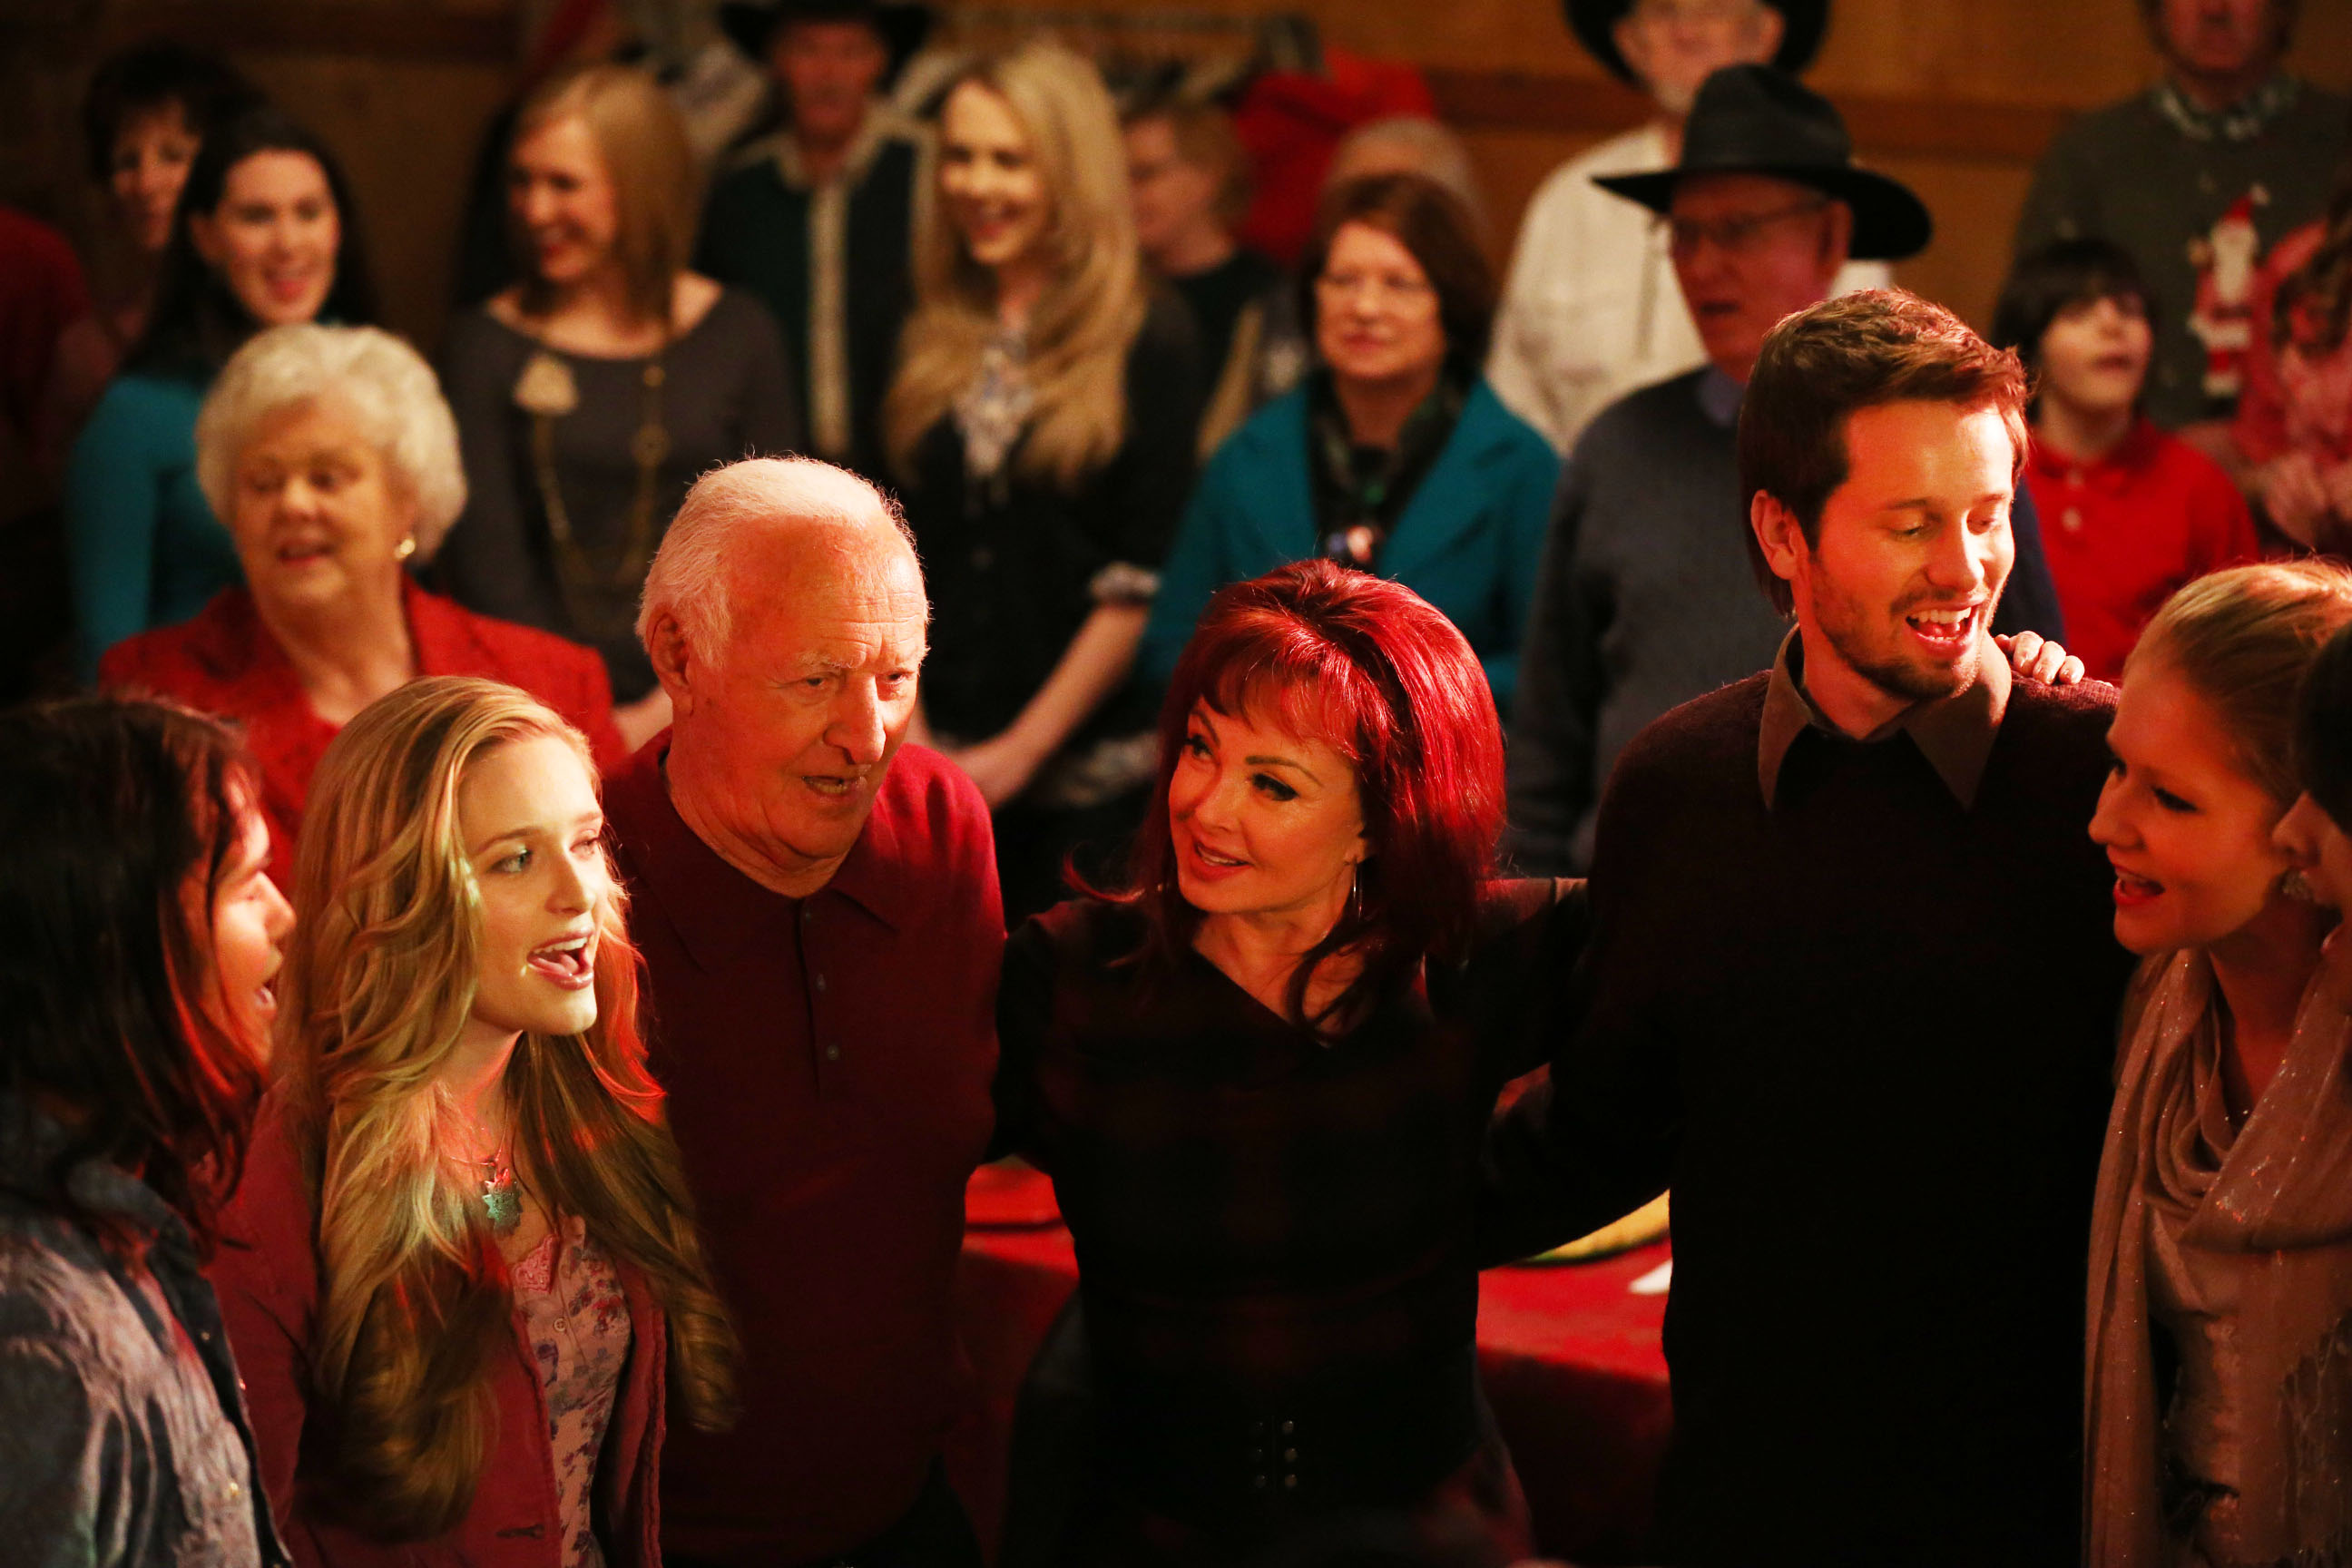 Naomi Judd, Robert Loggia, Booboo Stewart, Charleene Closshey, Greer Grammer, and Tyler Ritter in An Evergreen Christmas (2014)